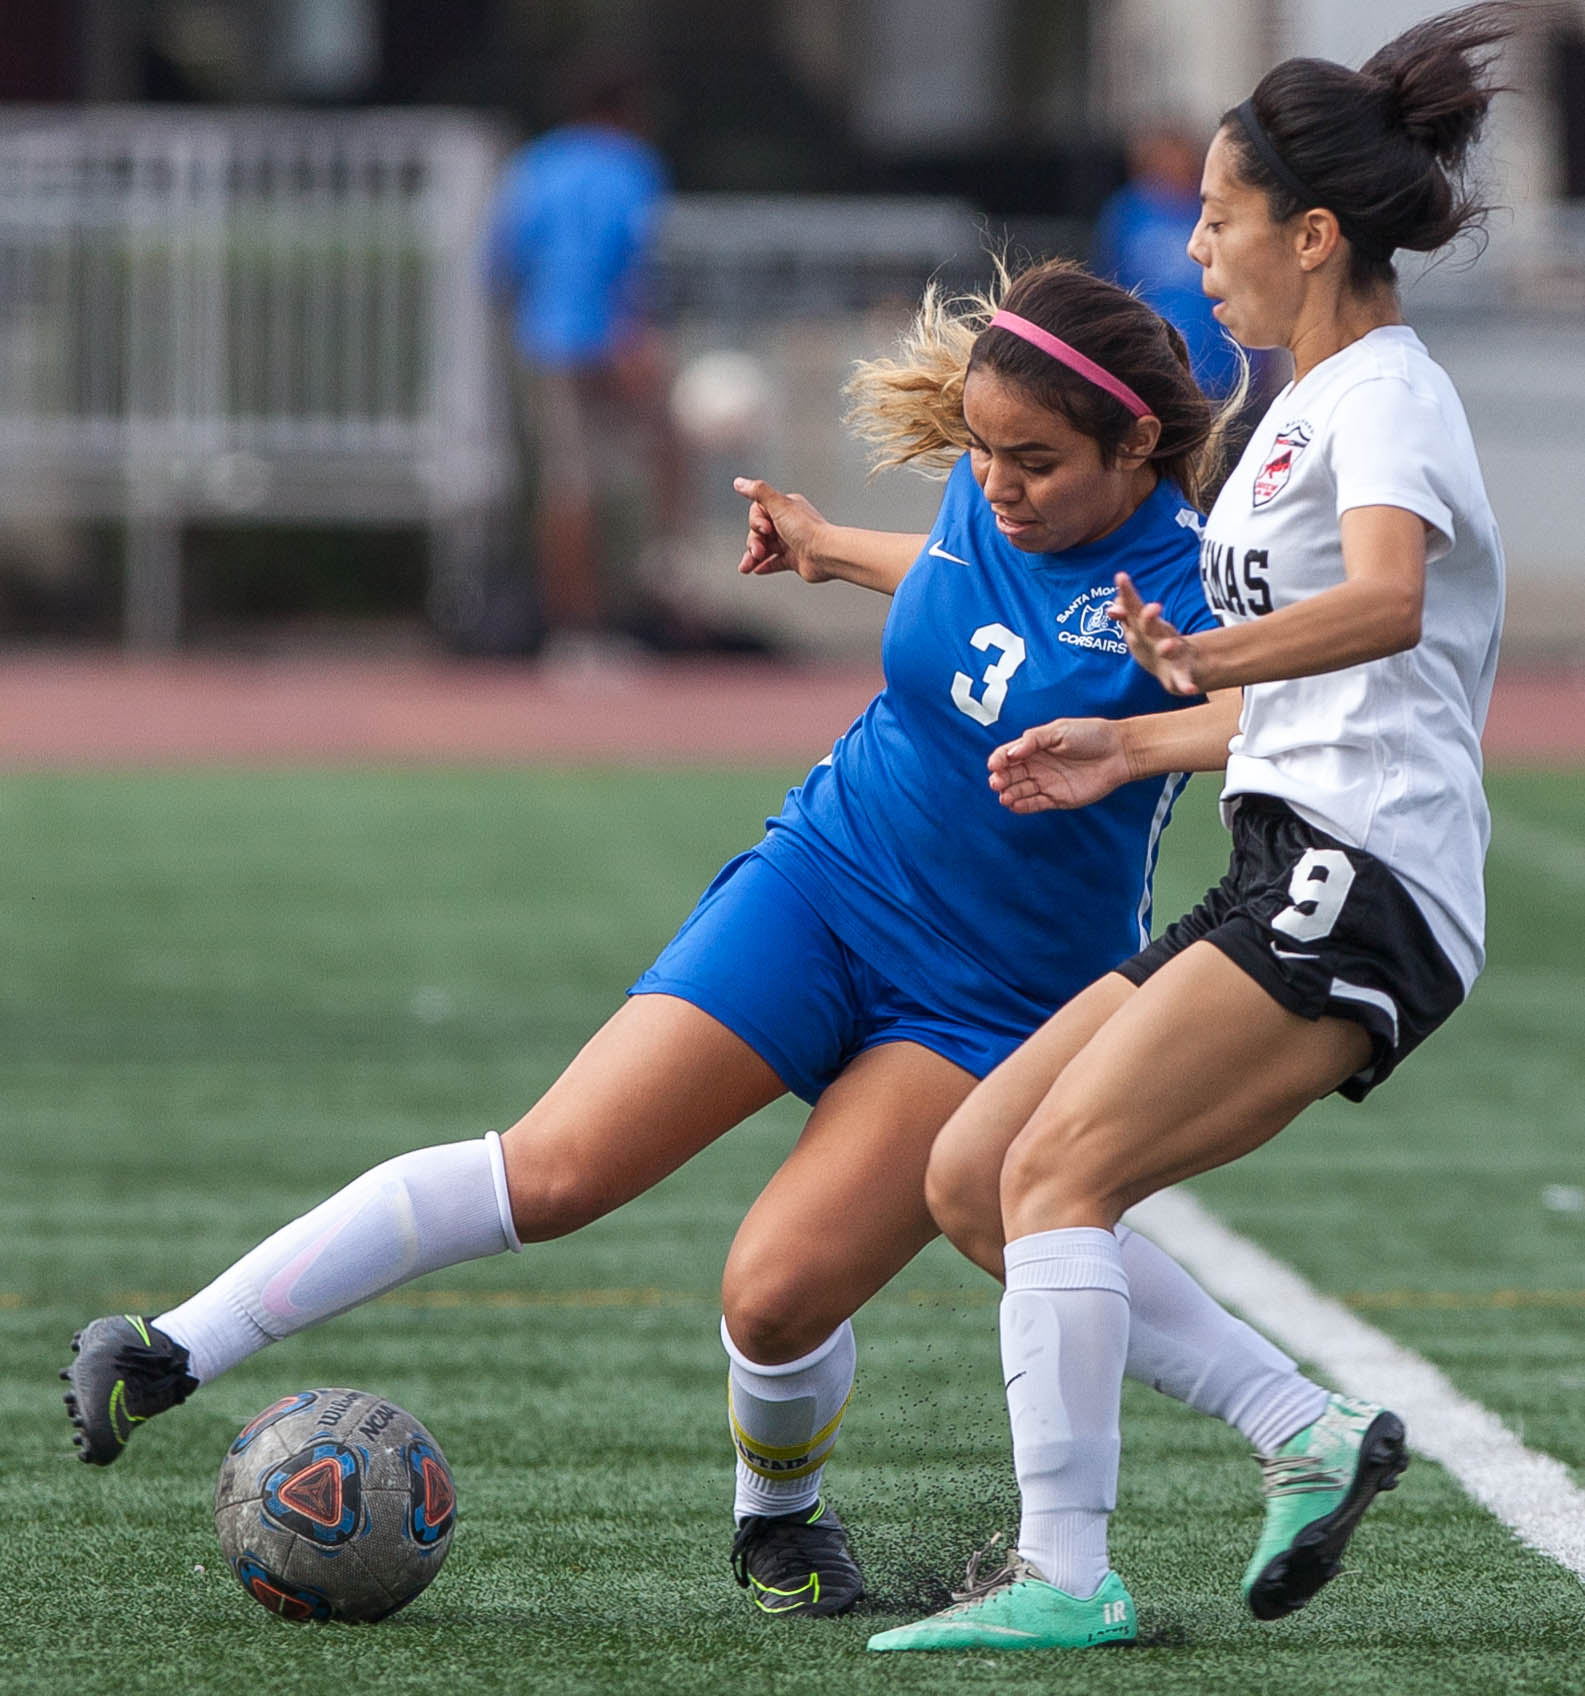 Santa Monica College Corsair Chrystal Dorado (3) protects the ball from Pierce College Brahma Irene Reyes (9) on the Corsair Field at SMC on Tuesday, October 31, 2017 in Santa Monica, Calif. Corsairs win against the Brahmas 1-0 . (Elena Rybina)